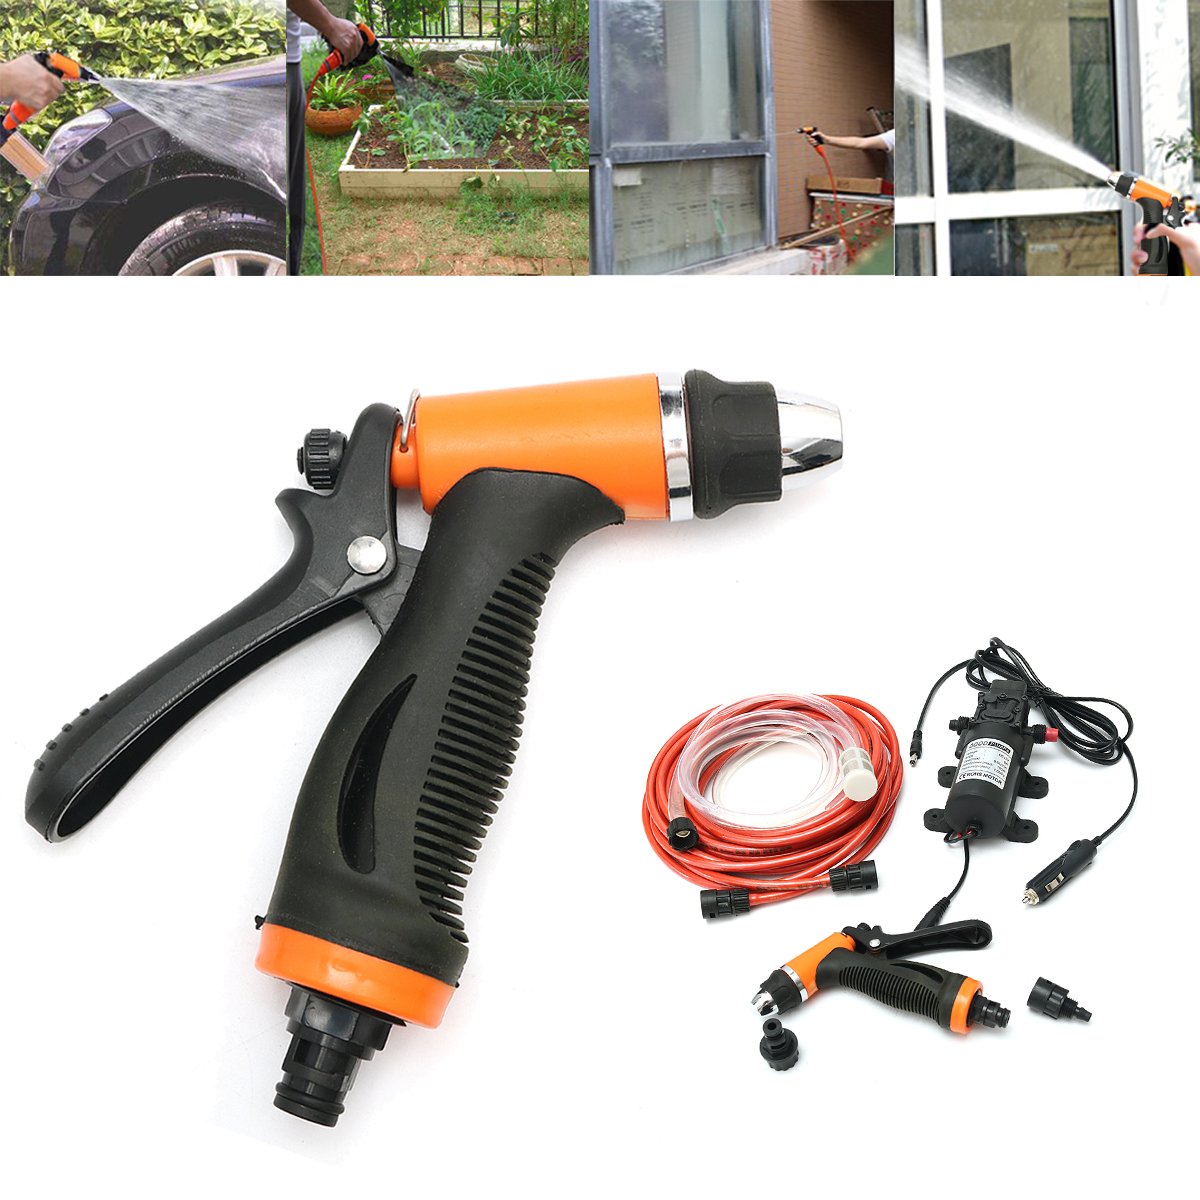 12V Portable 100W 160PSI High Pressure Car Electric Washer Auto Wash Pump Set Tool